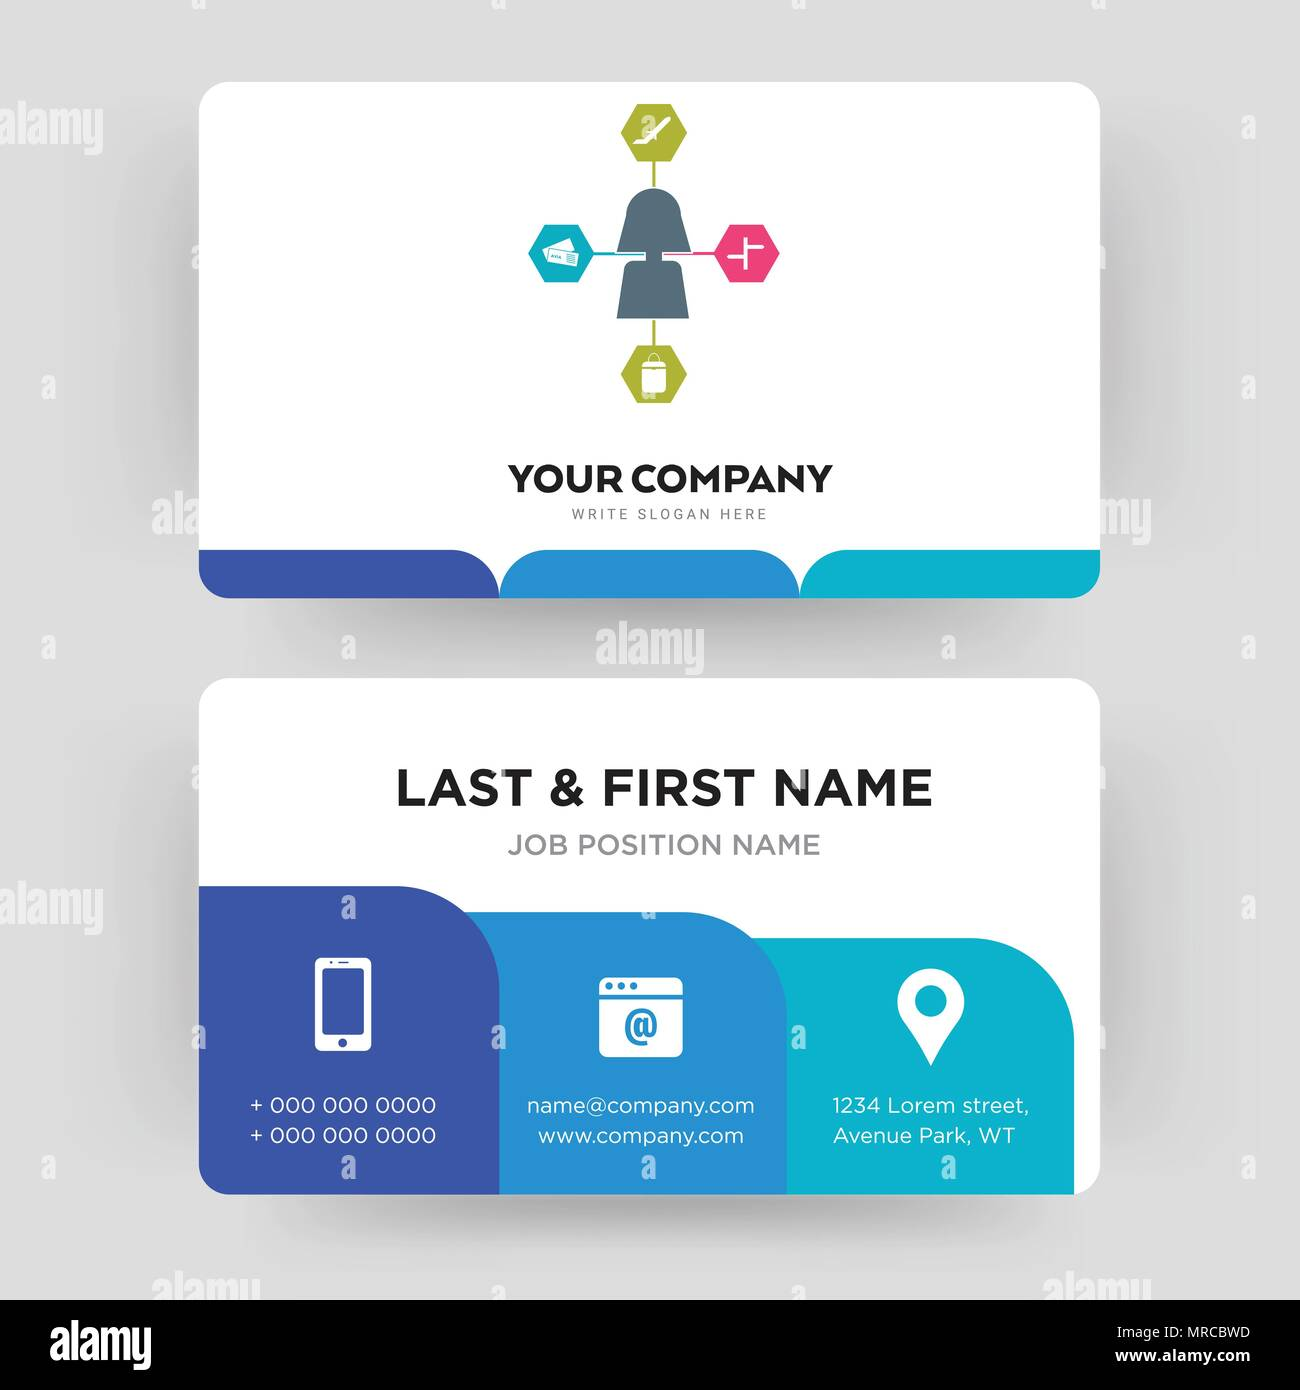 Travel agent business card design template visiting for your travel agent business card design template visiting for your company modern creative and clean identity card vector colourmoves